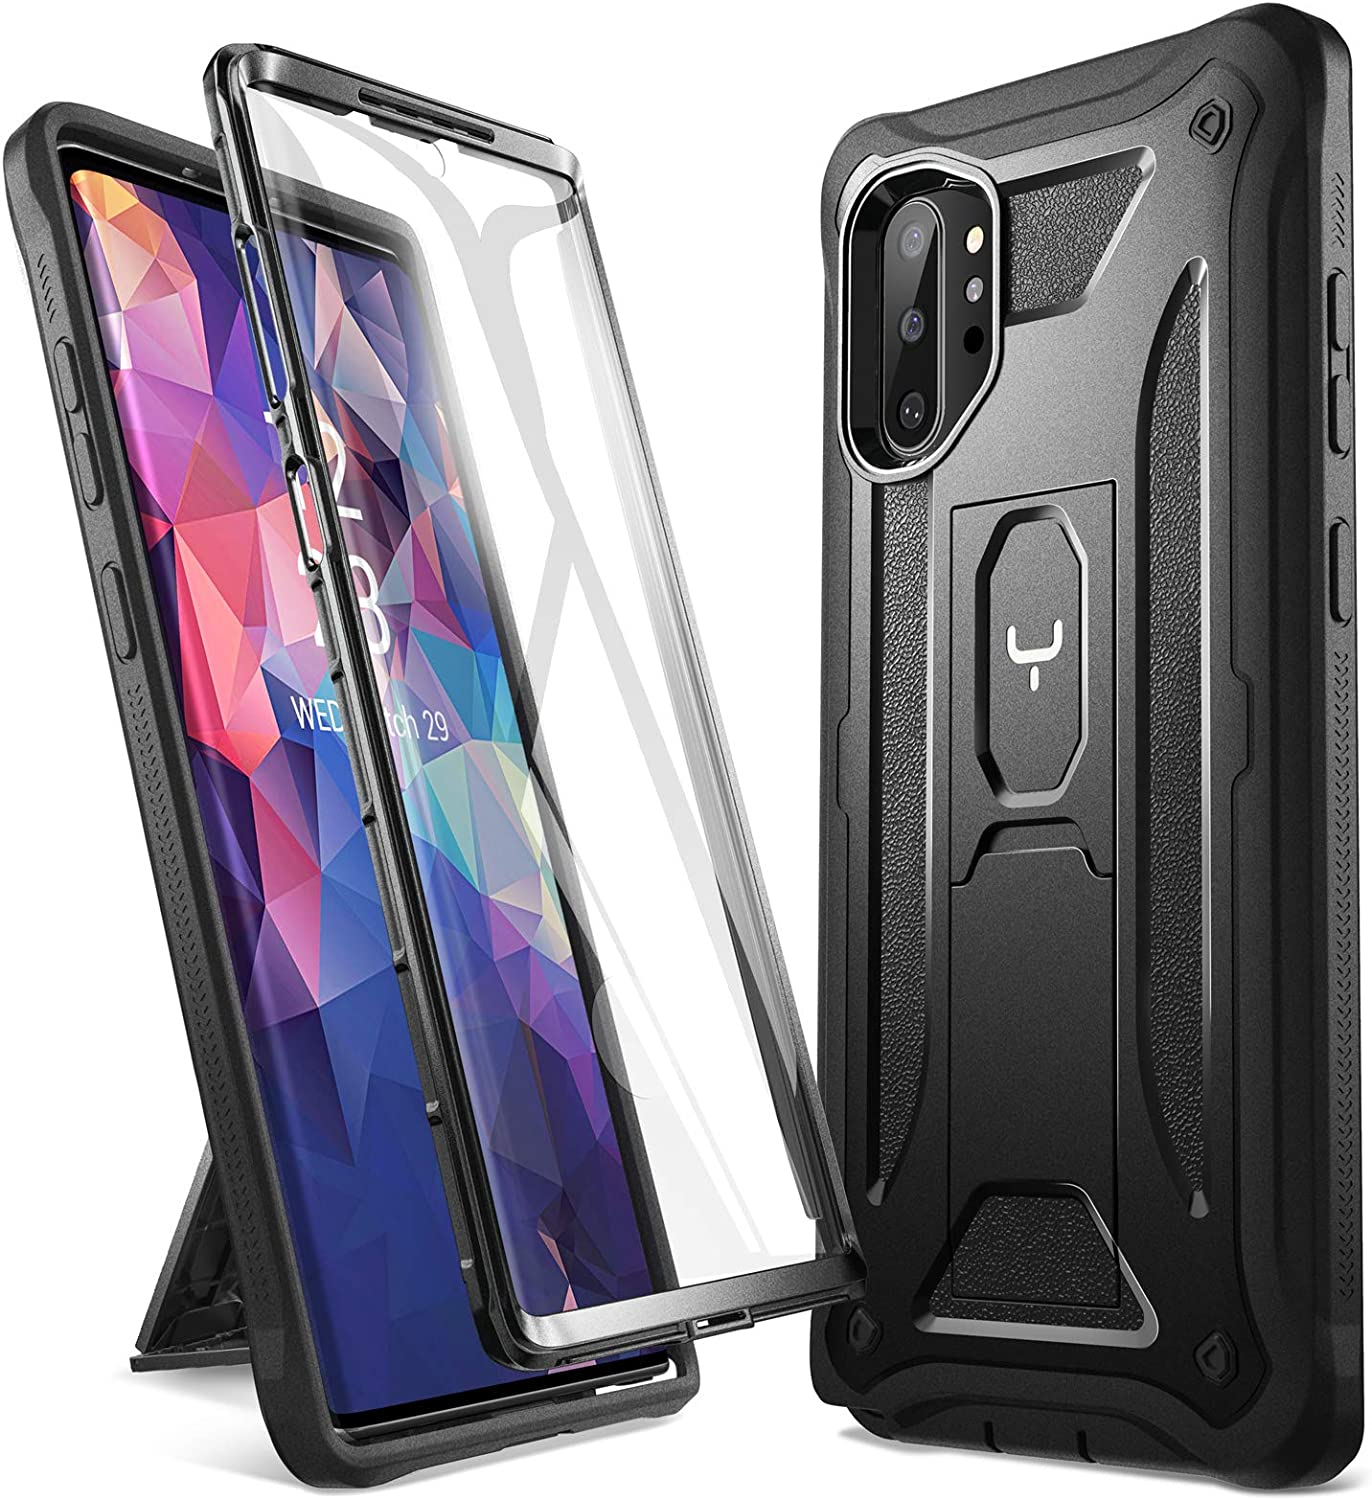 Transparent Soft Absorption TPU Gel Flexible Ultra Lightweight Silicone Ultra Thin Case for Samsung Galaxy Note 10 plus GANAN Case Compatible with Samsung Note 10+